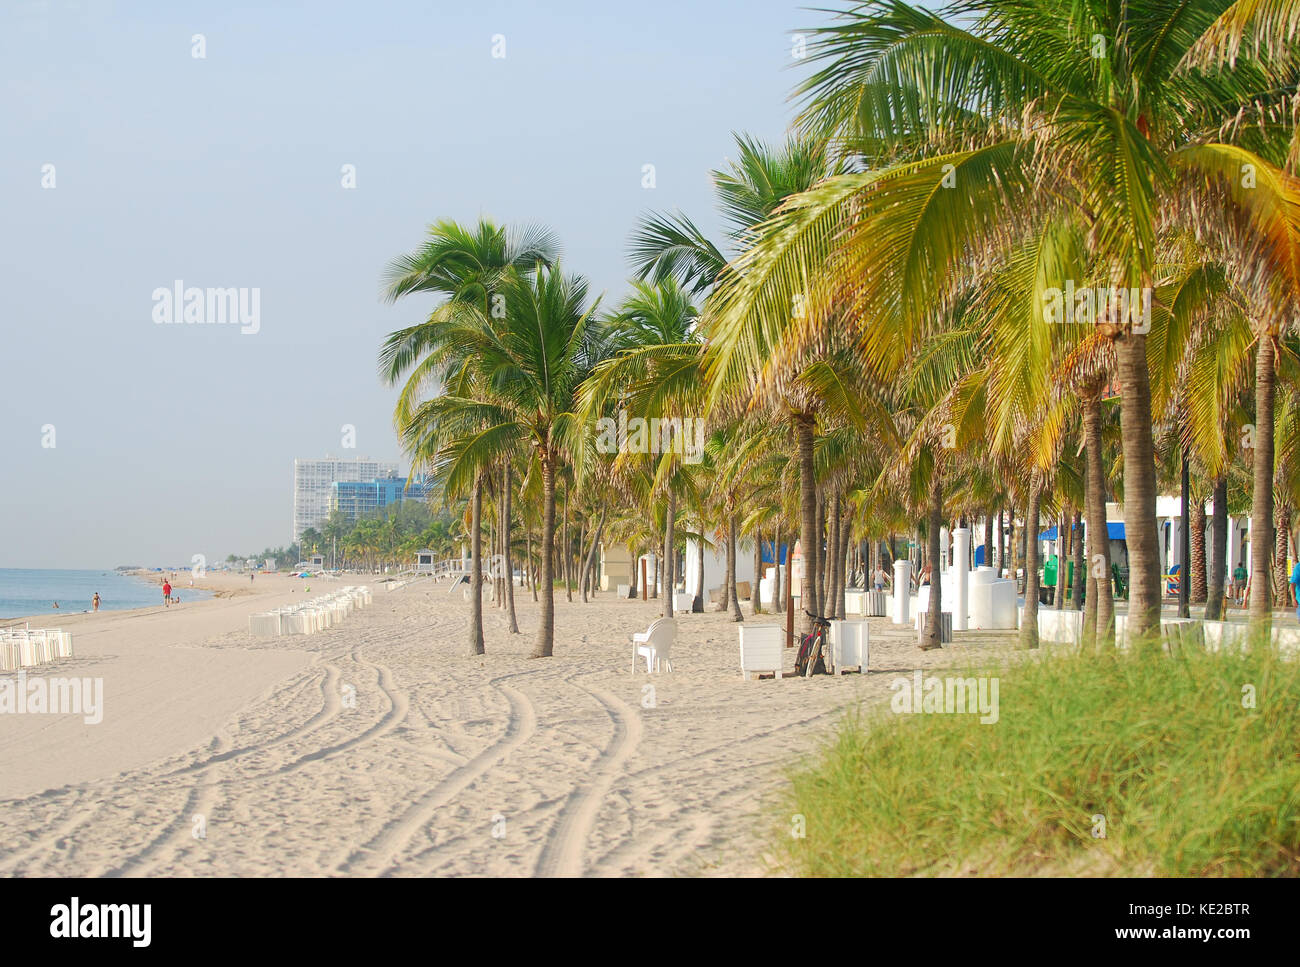 Early morning view of Fort Lauderdale Beach, Florida - Stock Image